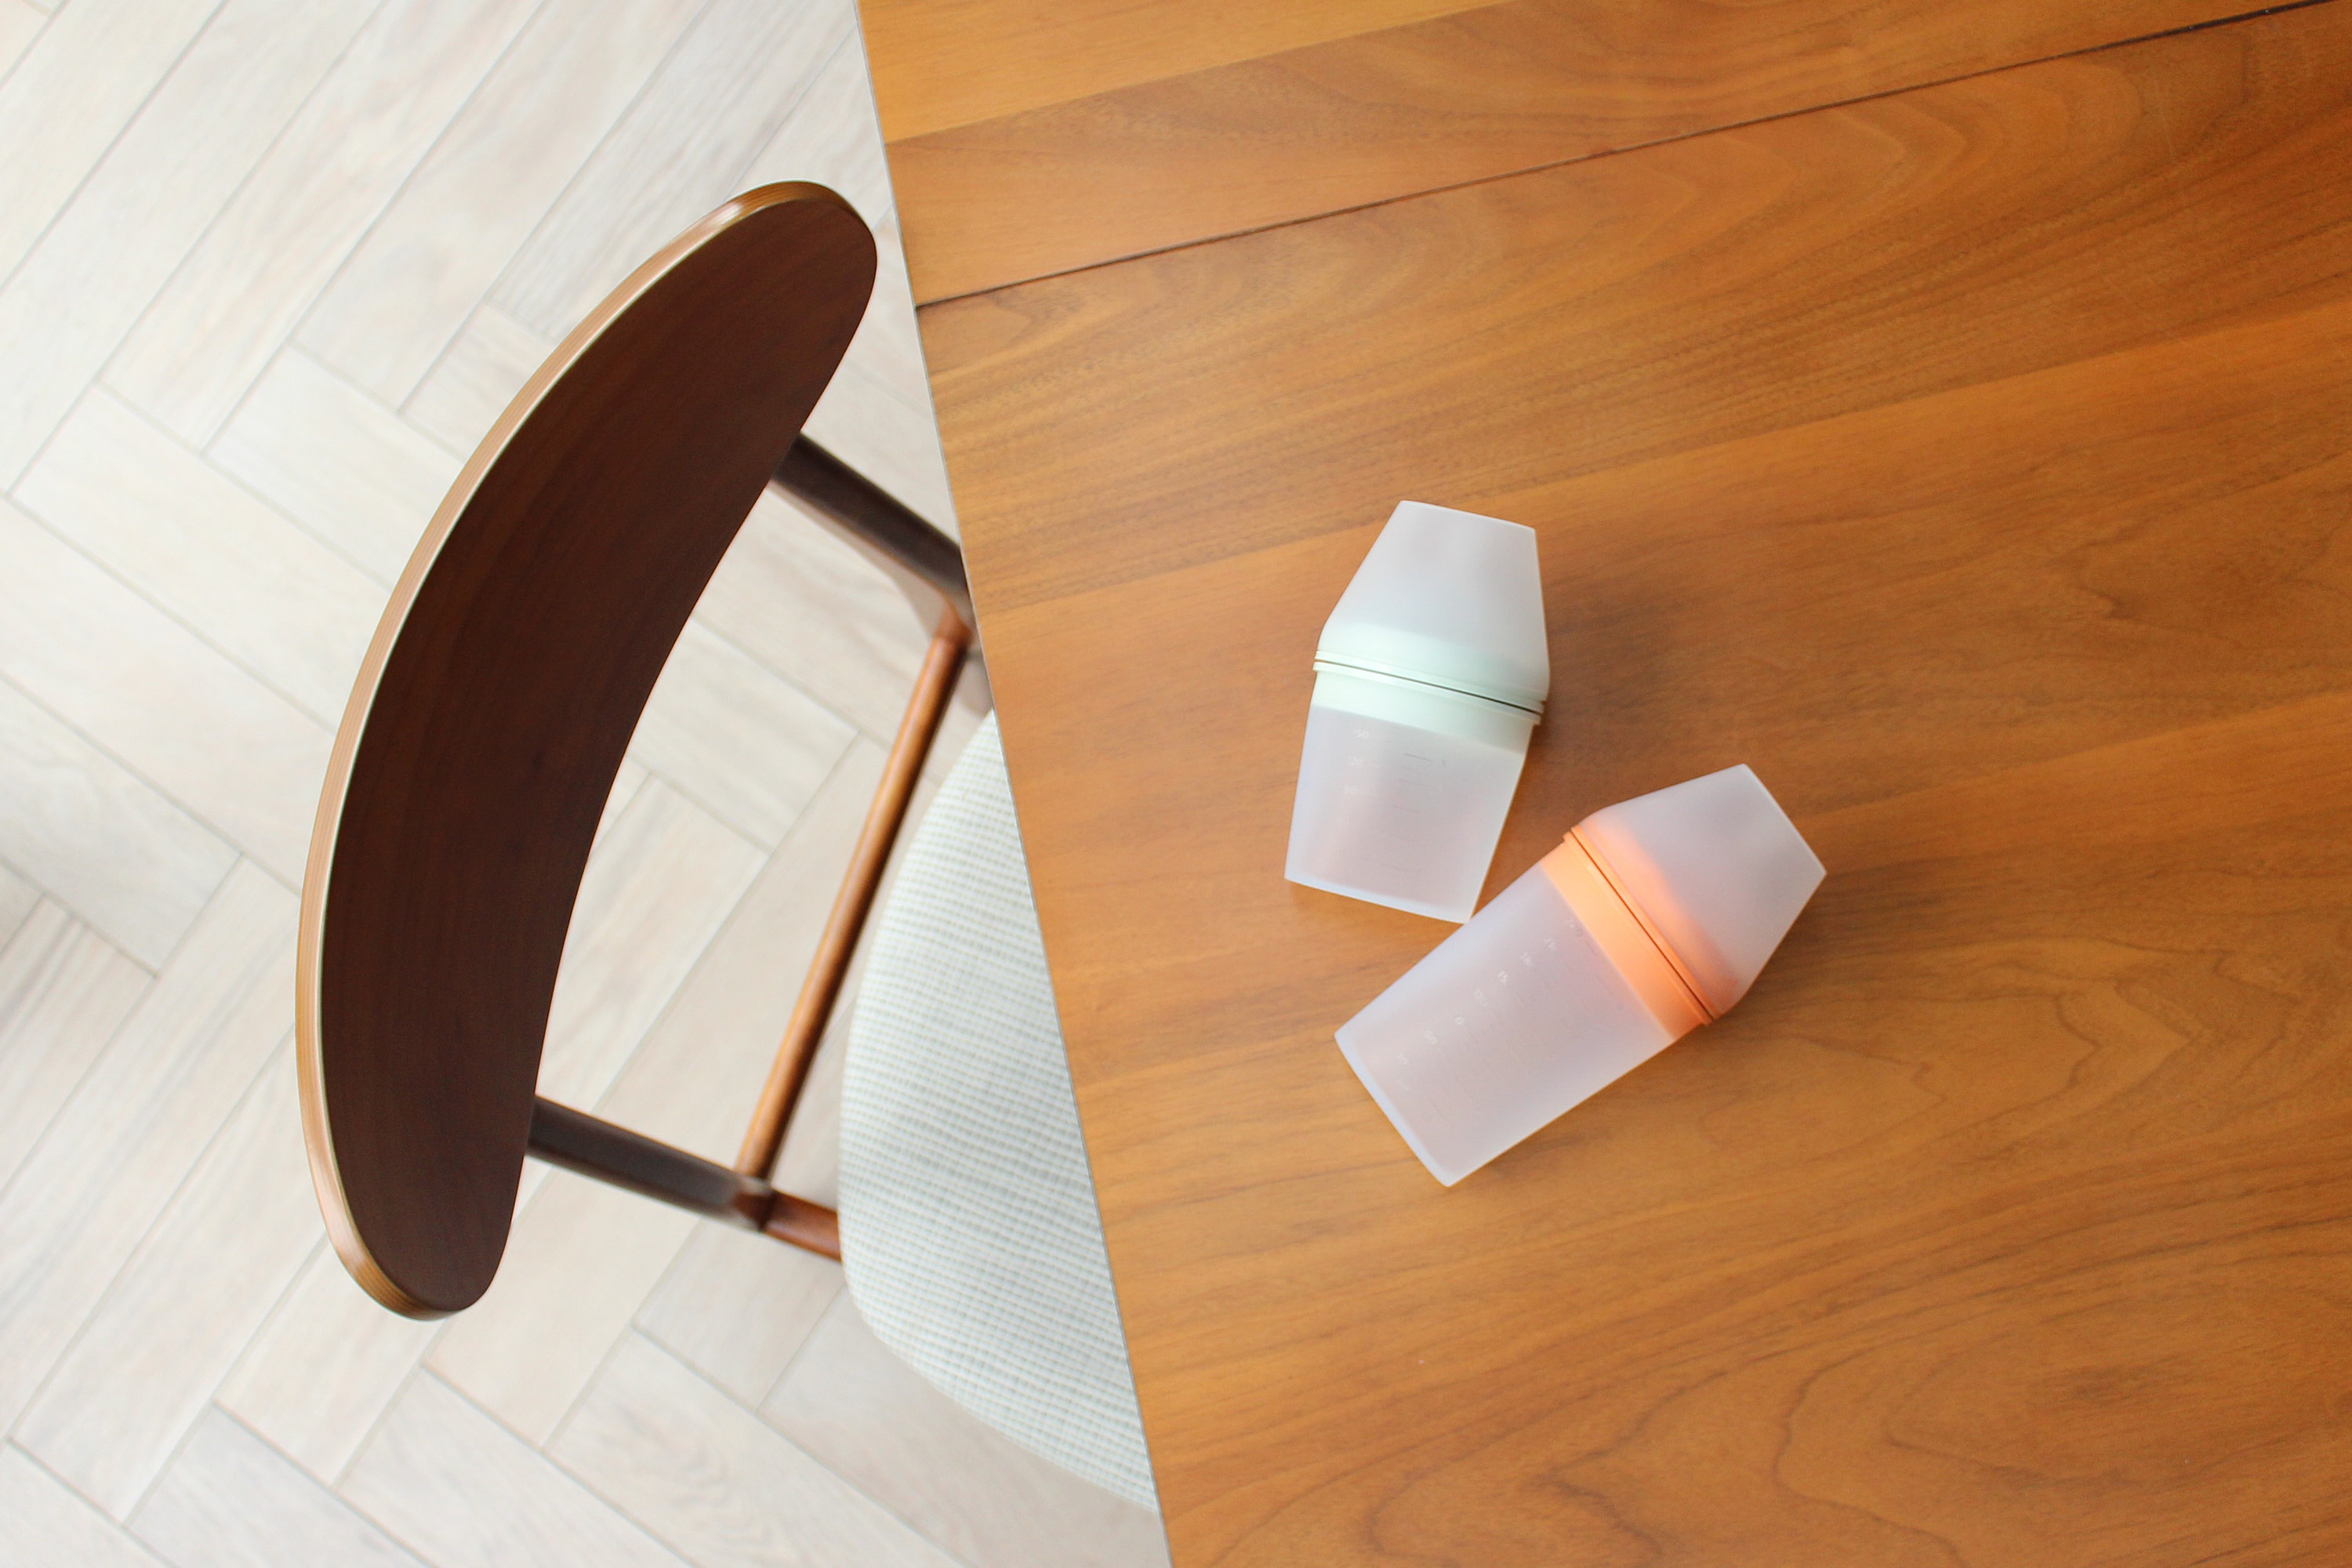 Blond, an Industrial and Product Design Studio based in London. Project: Borrn Bottle. Image: Borrn Bottle, Green.